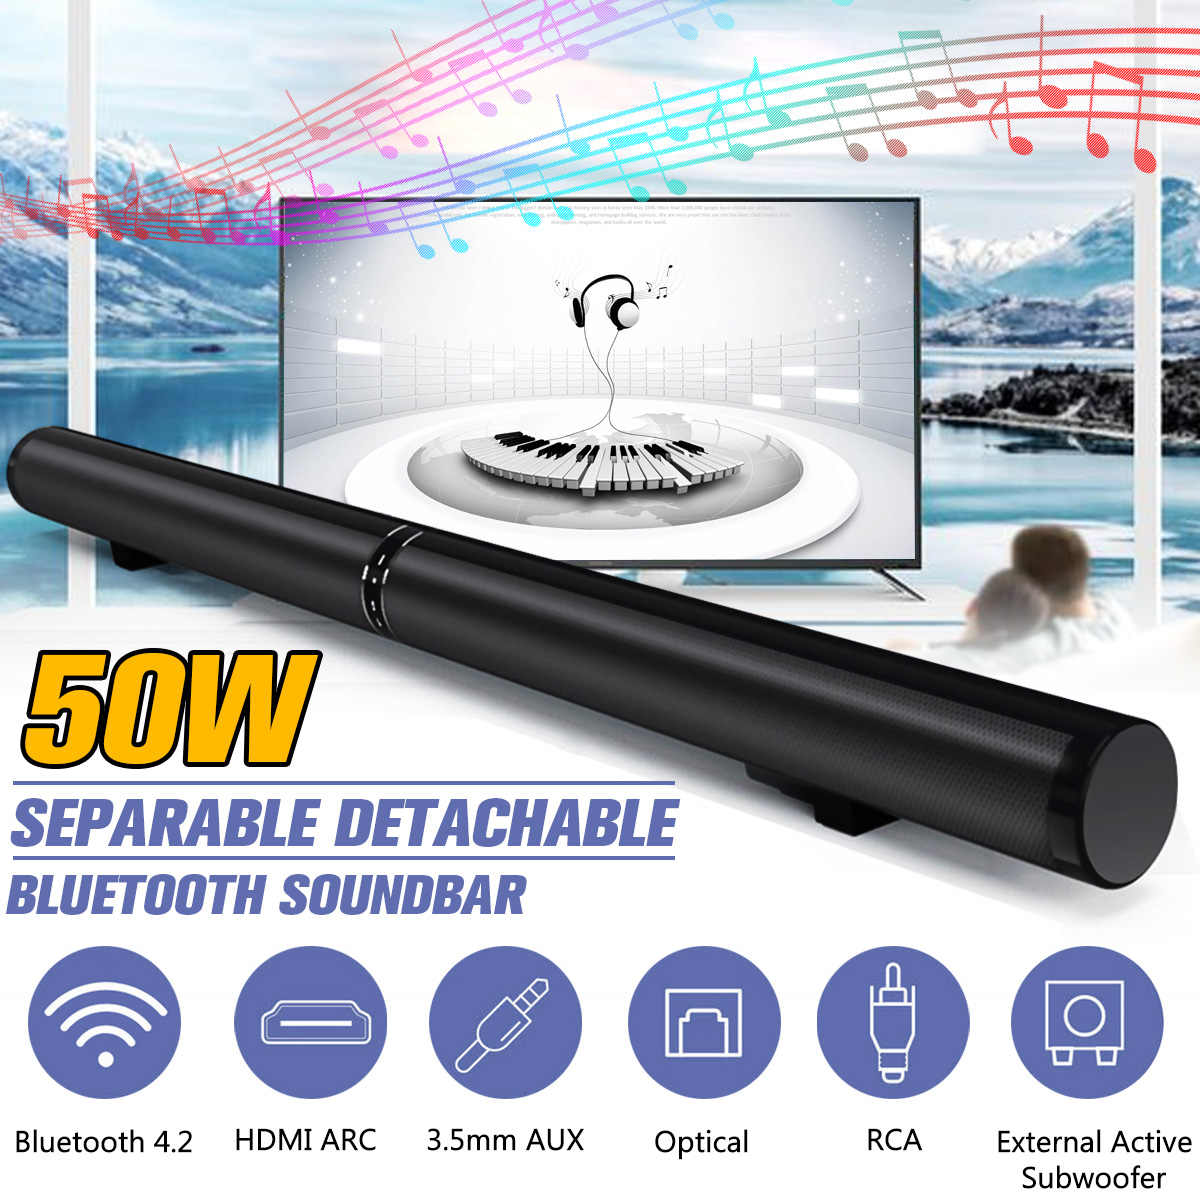 50W 100 centimetri HiFi Staccabile Senza Fili di bluetooth Soundbar Altoparlante 3D Surround Stereo Subwoofer per la TV Sistema Home Theatre Audio bar